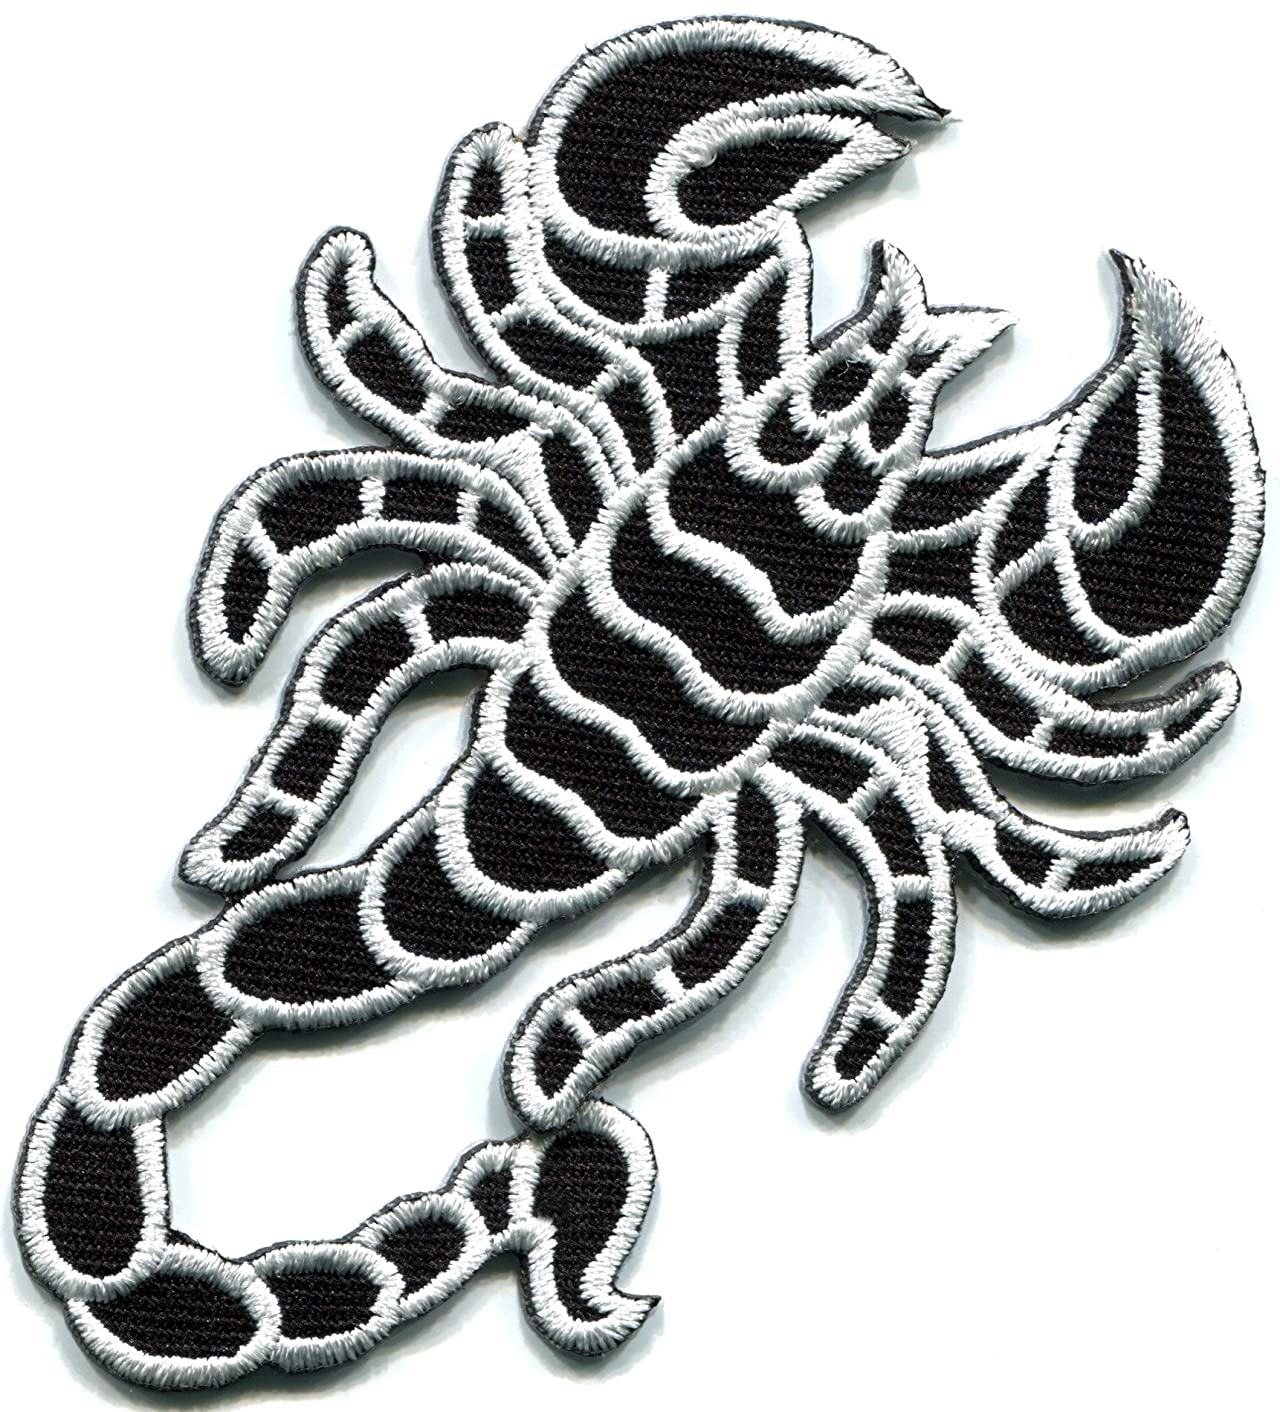 White Scorpion tattoo biker embroidered applique iron-on patch new